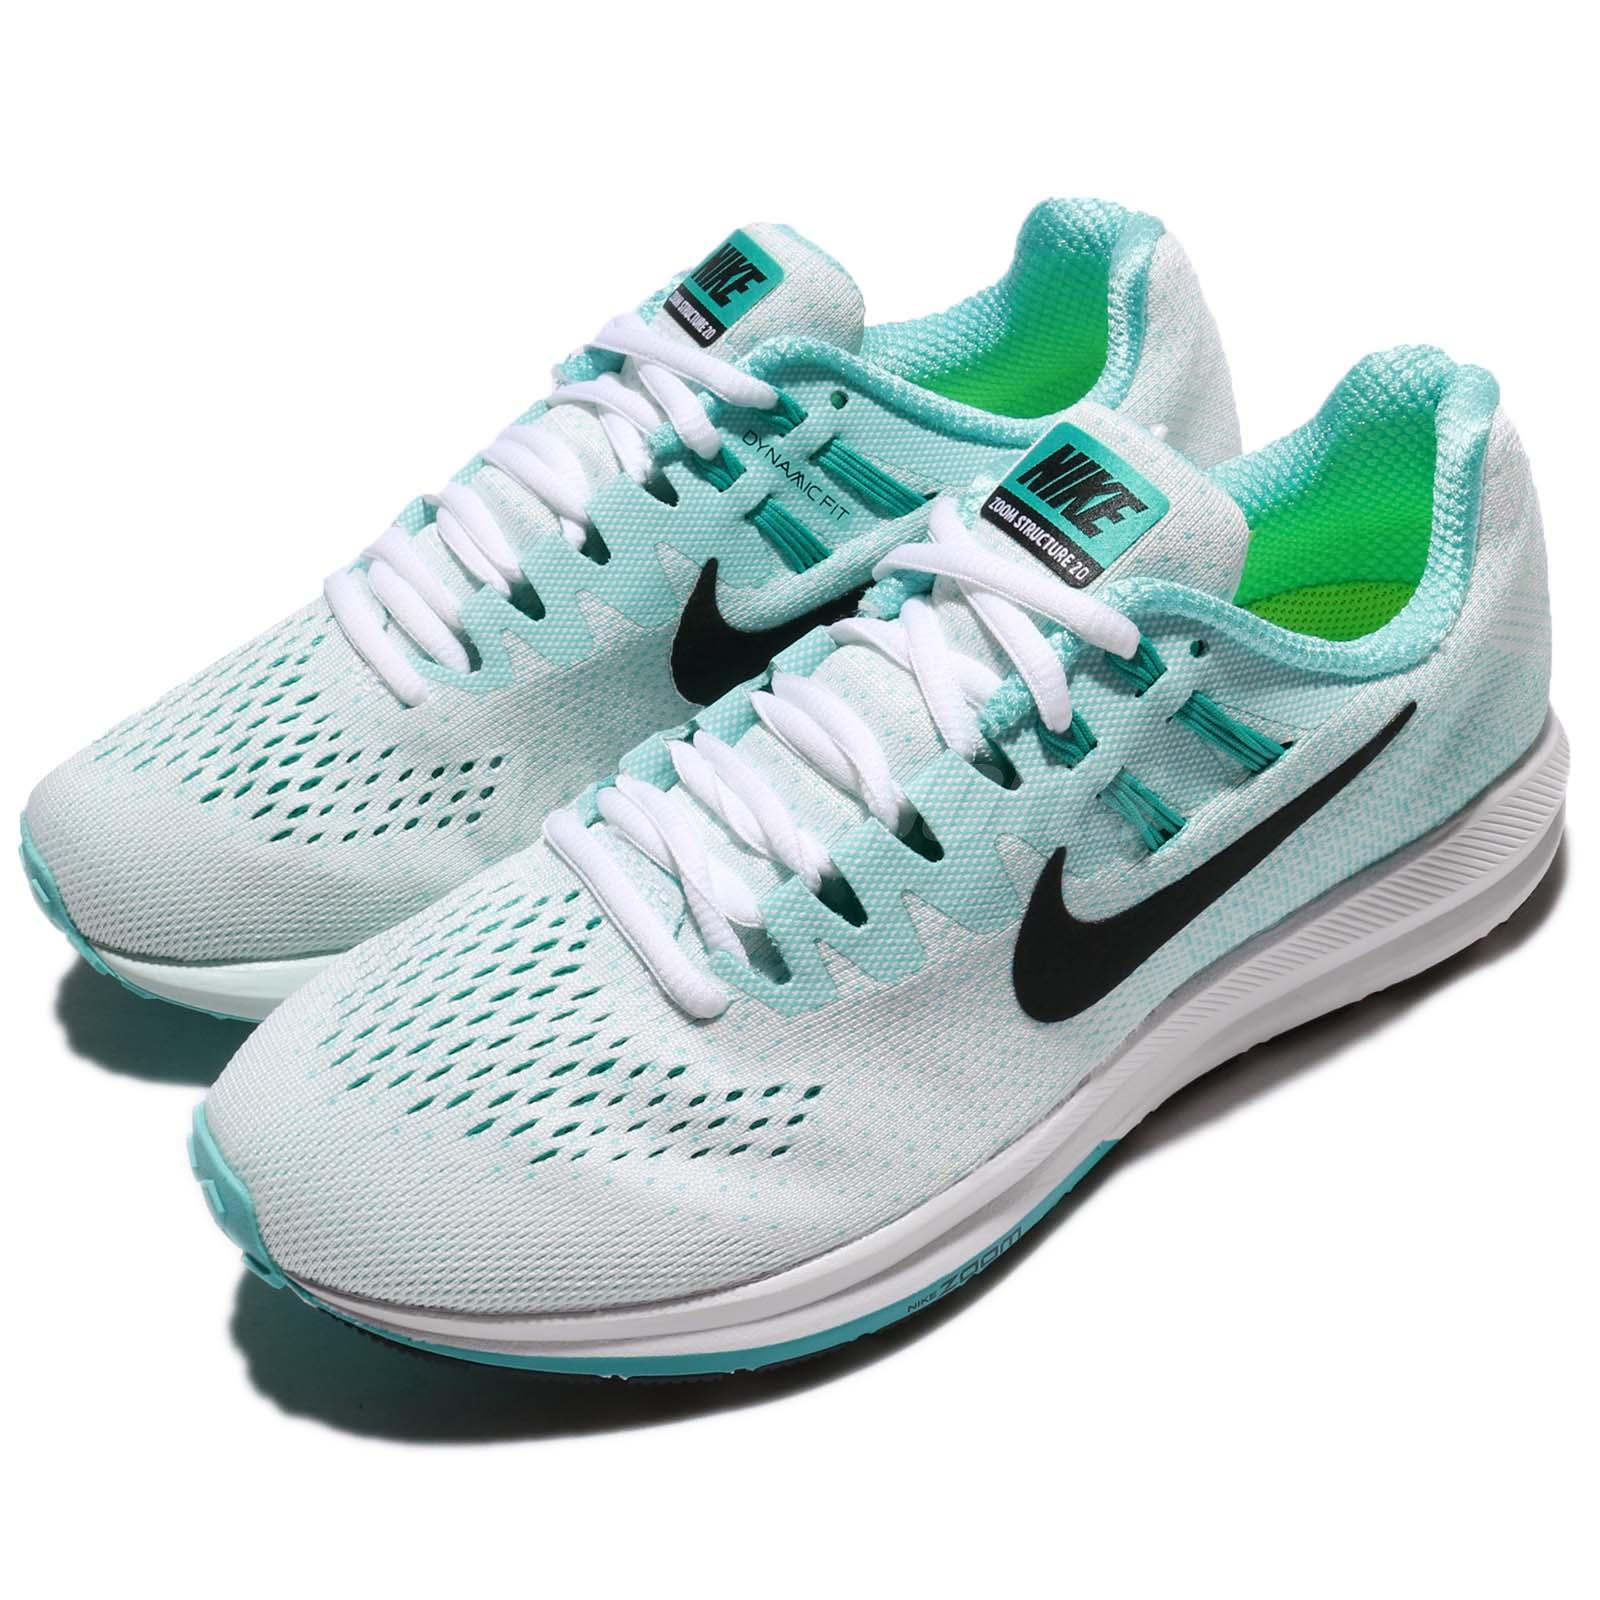 bc49c49c9c2e2 Details about Wmns Nike Air Zoom Structure 20 White Green Women Running  Shoes 849577-101